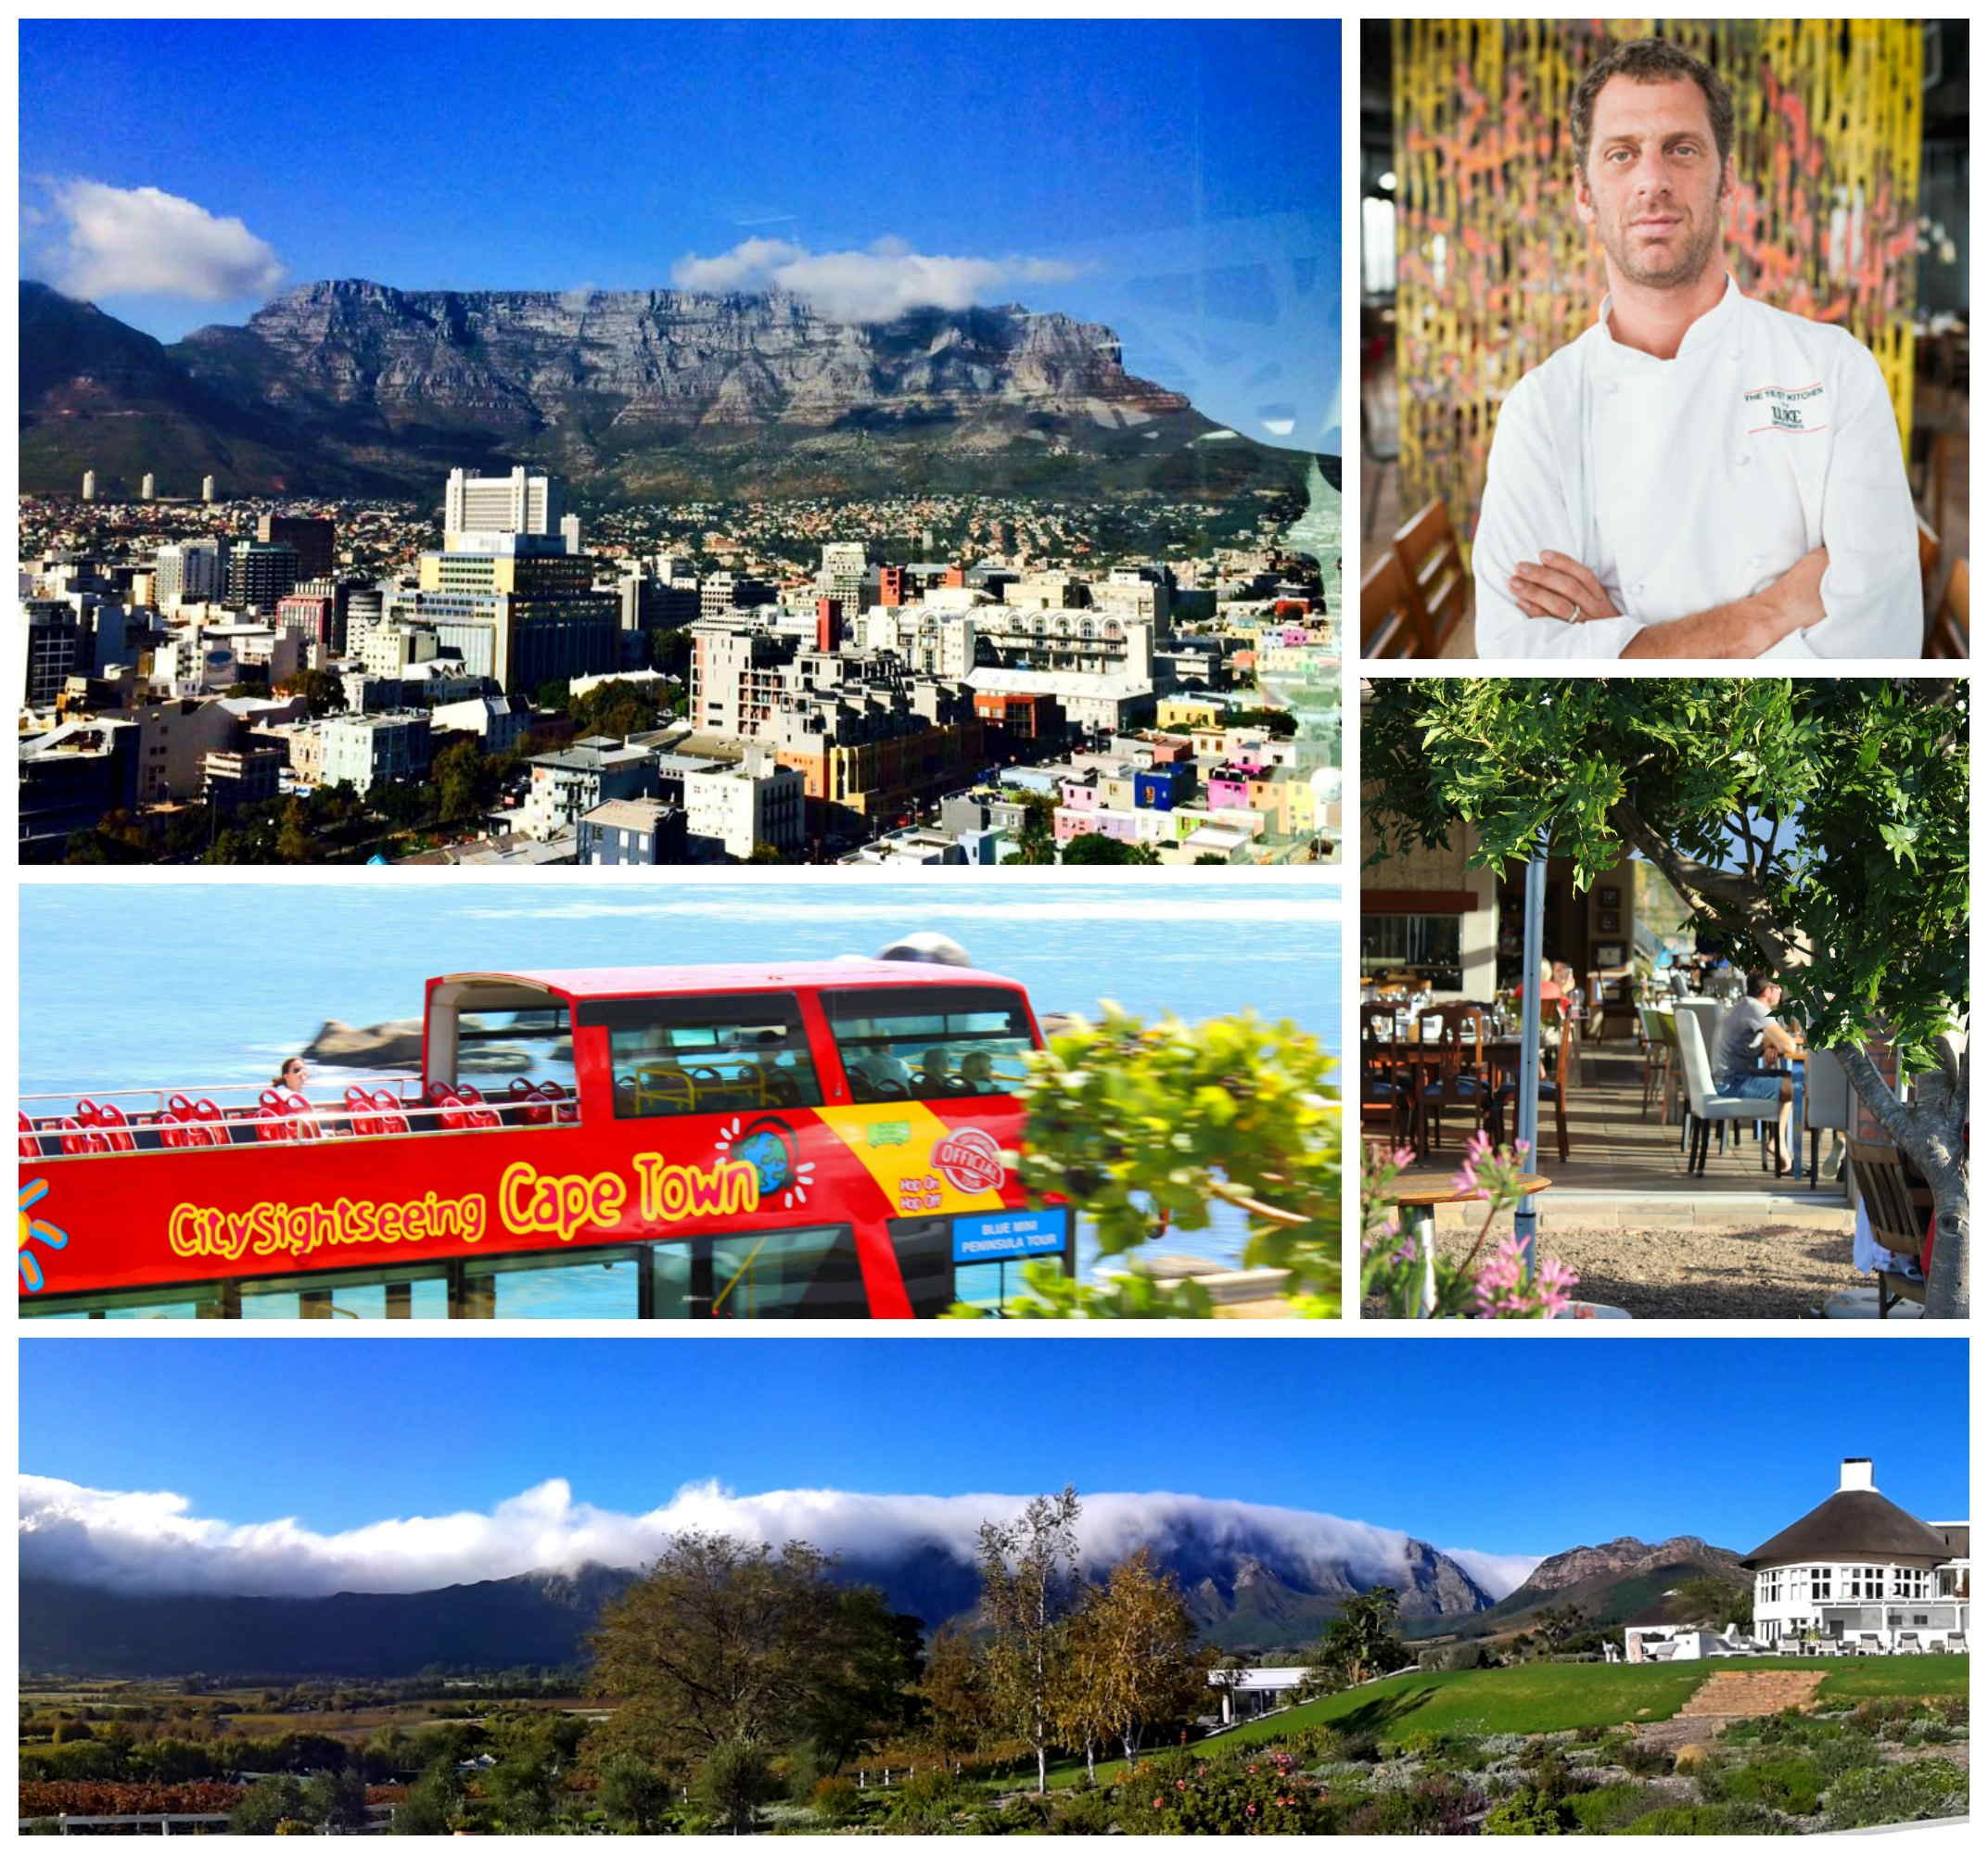 Cape Town, Best City in the World, Luke Dale-Roberts, CitySightseeing, Franschhoek, Table Mountain, Creation Wines